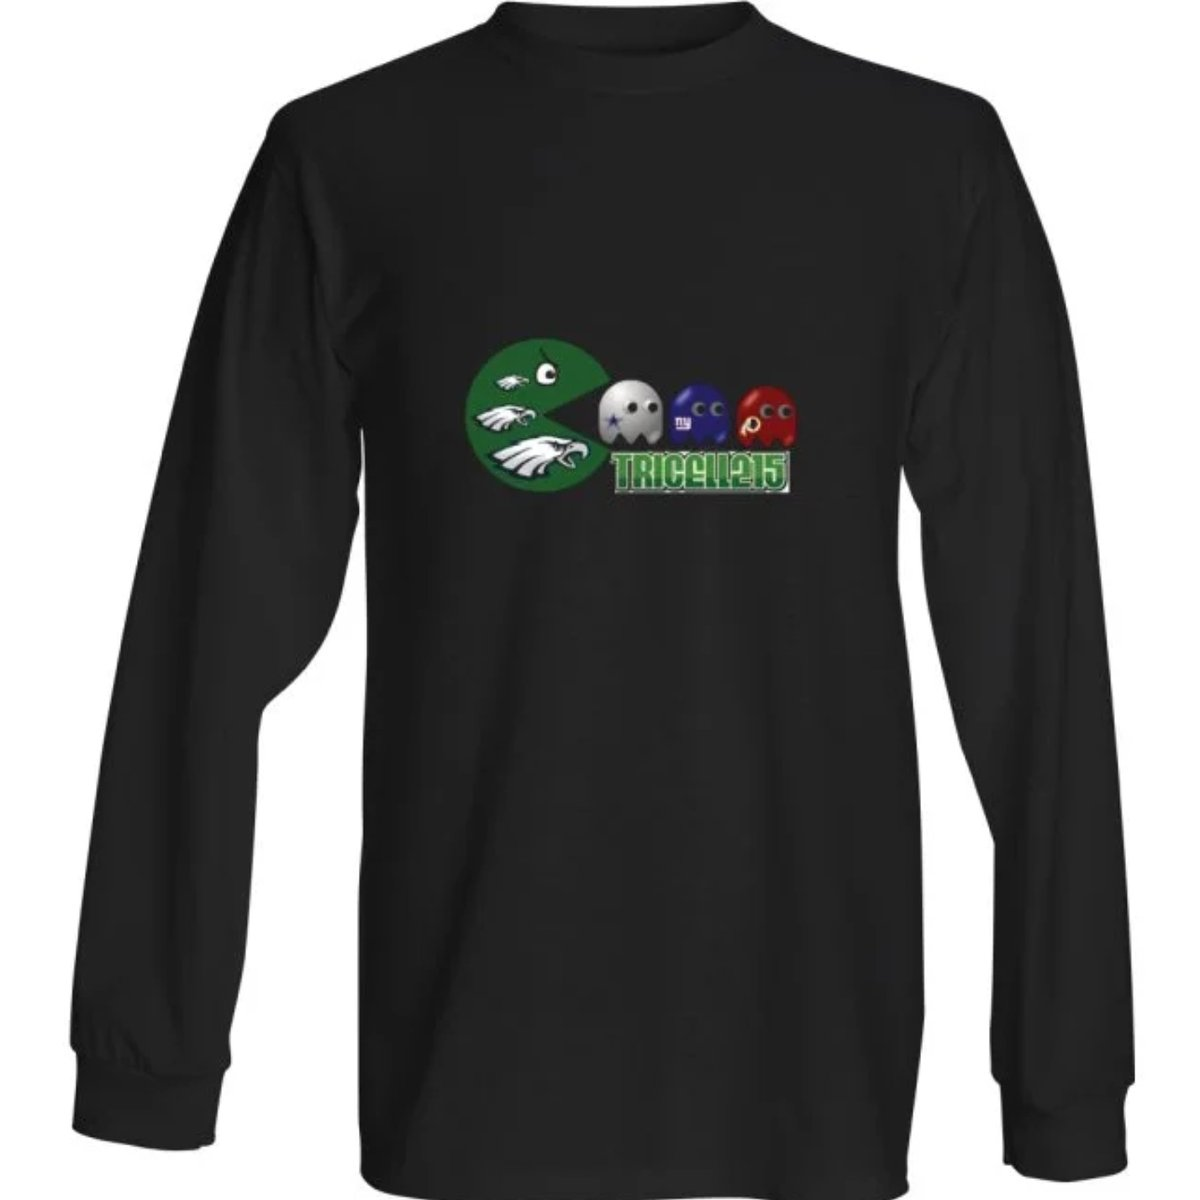 "$30.00 TRICELL 215- ""EAGLES PAC MAN "" T-SHIRT  Pre-shrunk 100% sofspun cotton  Breathable and lightweight fabric with superior softness  Order yours here: http://tricell215.bigcartel.com/   #tricell215  #longsleeve #Philadelphiaeagles  #nflpic.twitter.com/Y82IIBZnxF"